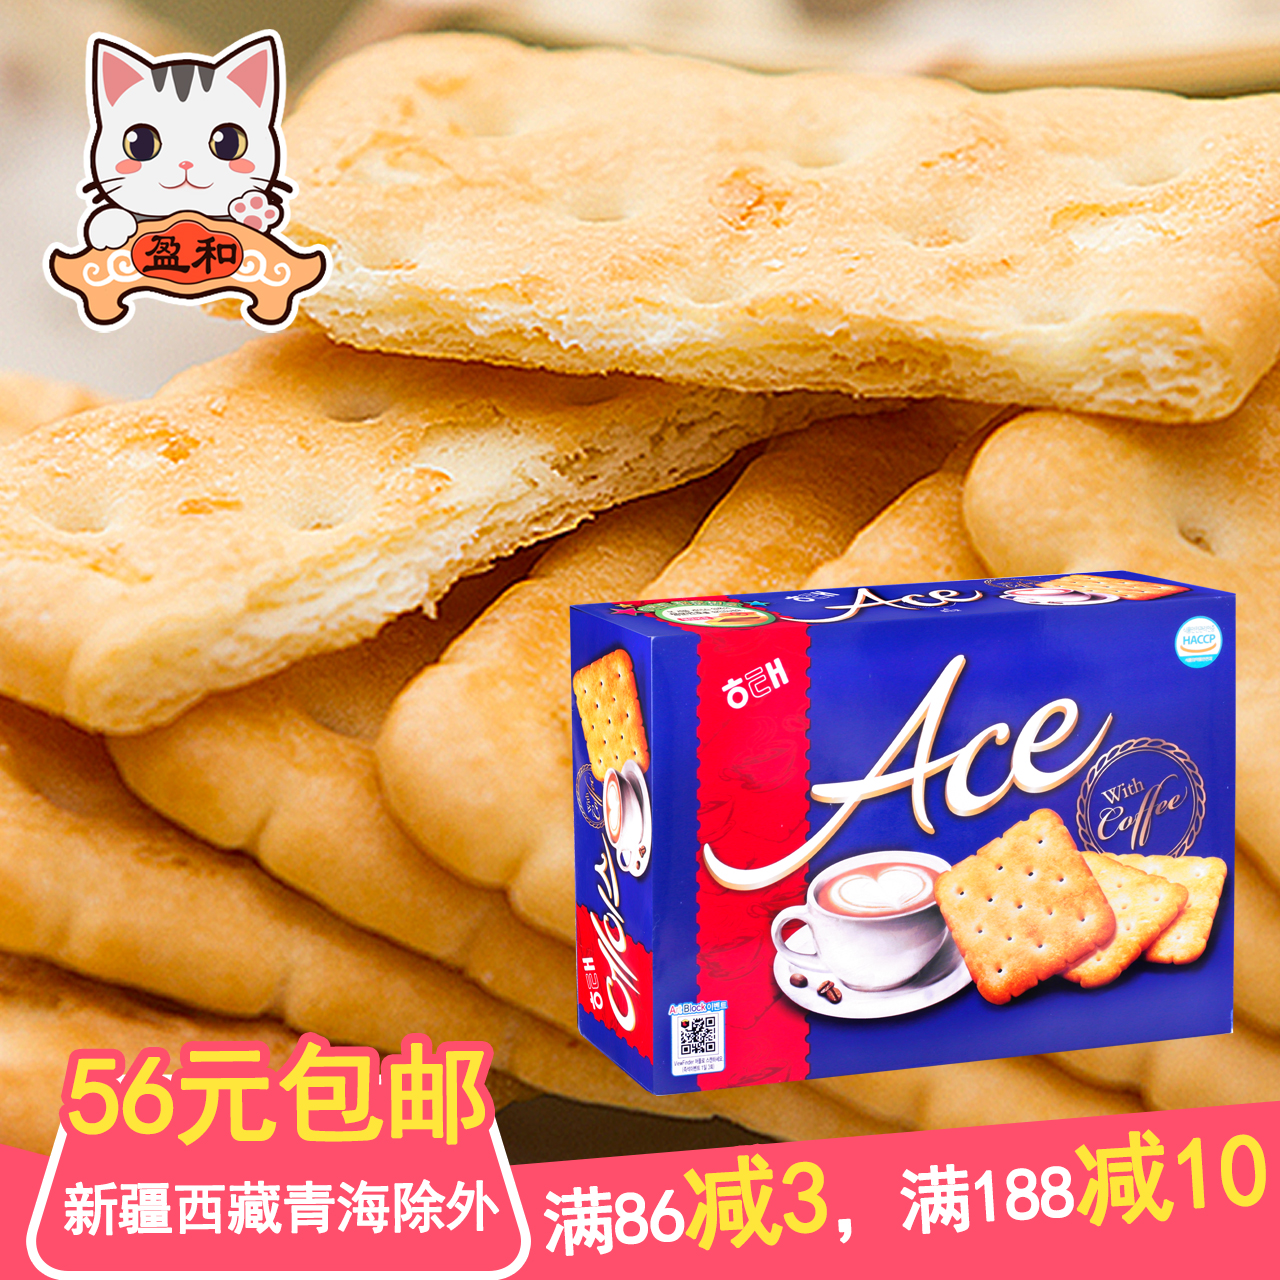 South korean imports zero food haitai sea too salty crackers ace mandasi 364g office snack crackers